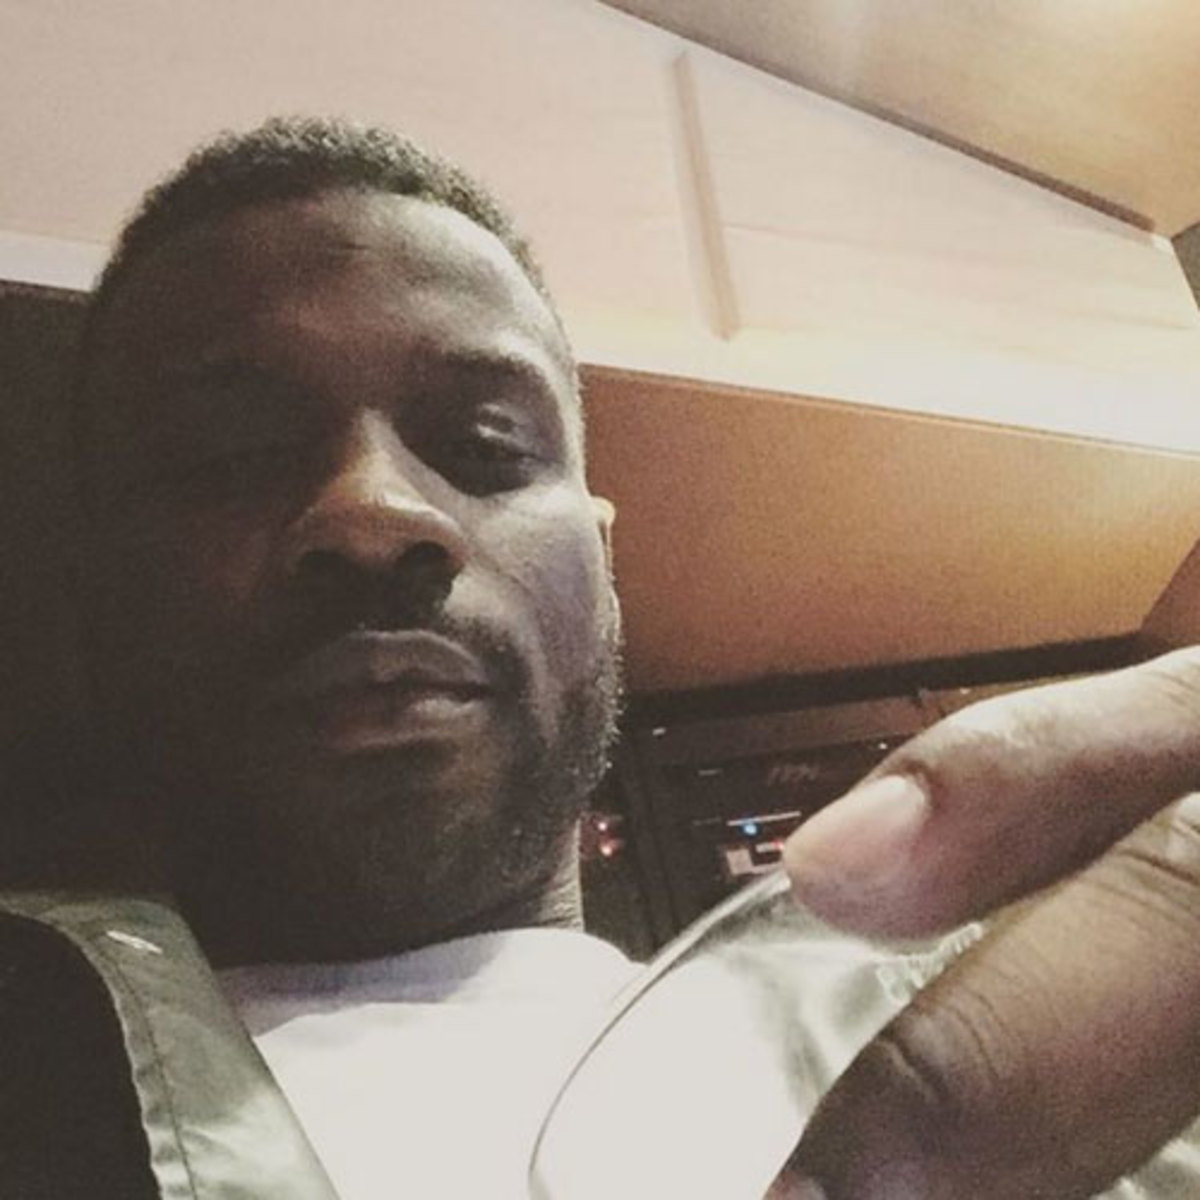 jay-rock-motorcycle-accident.jpg